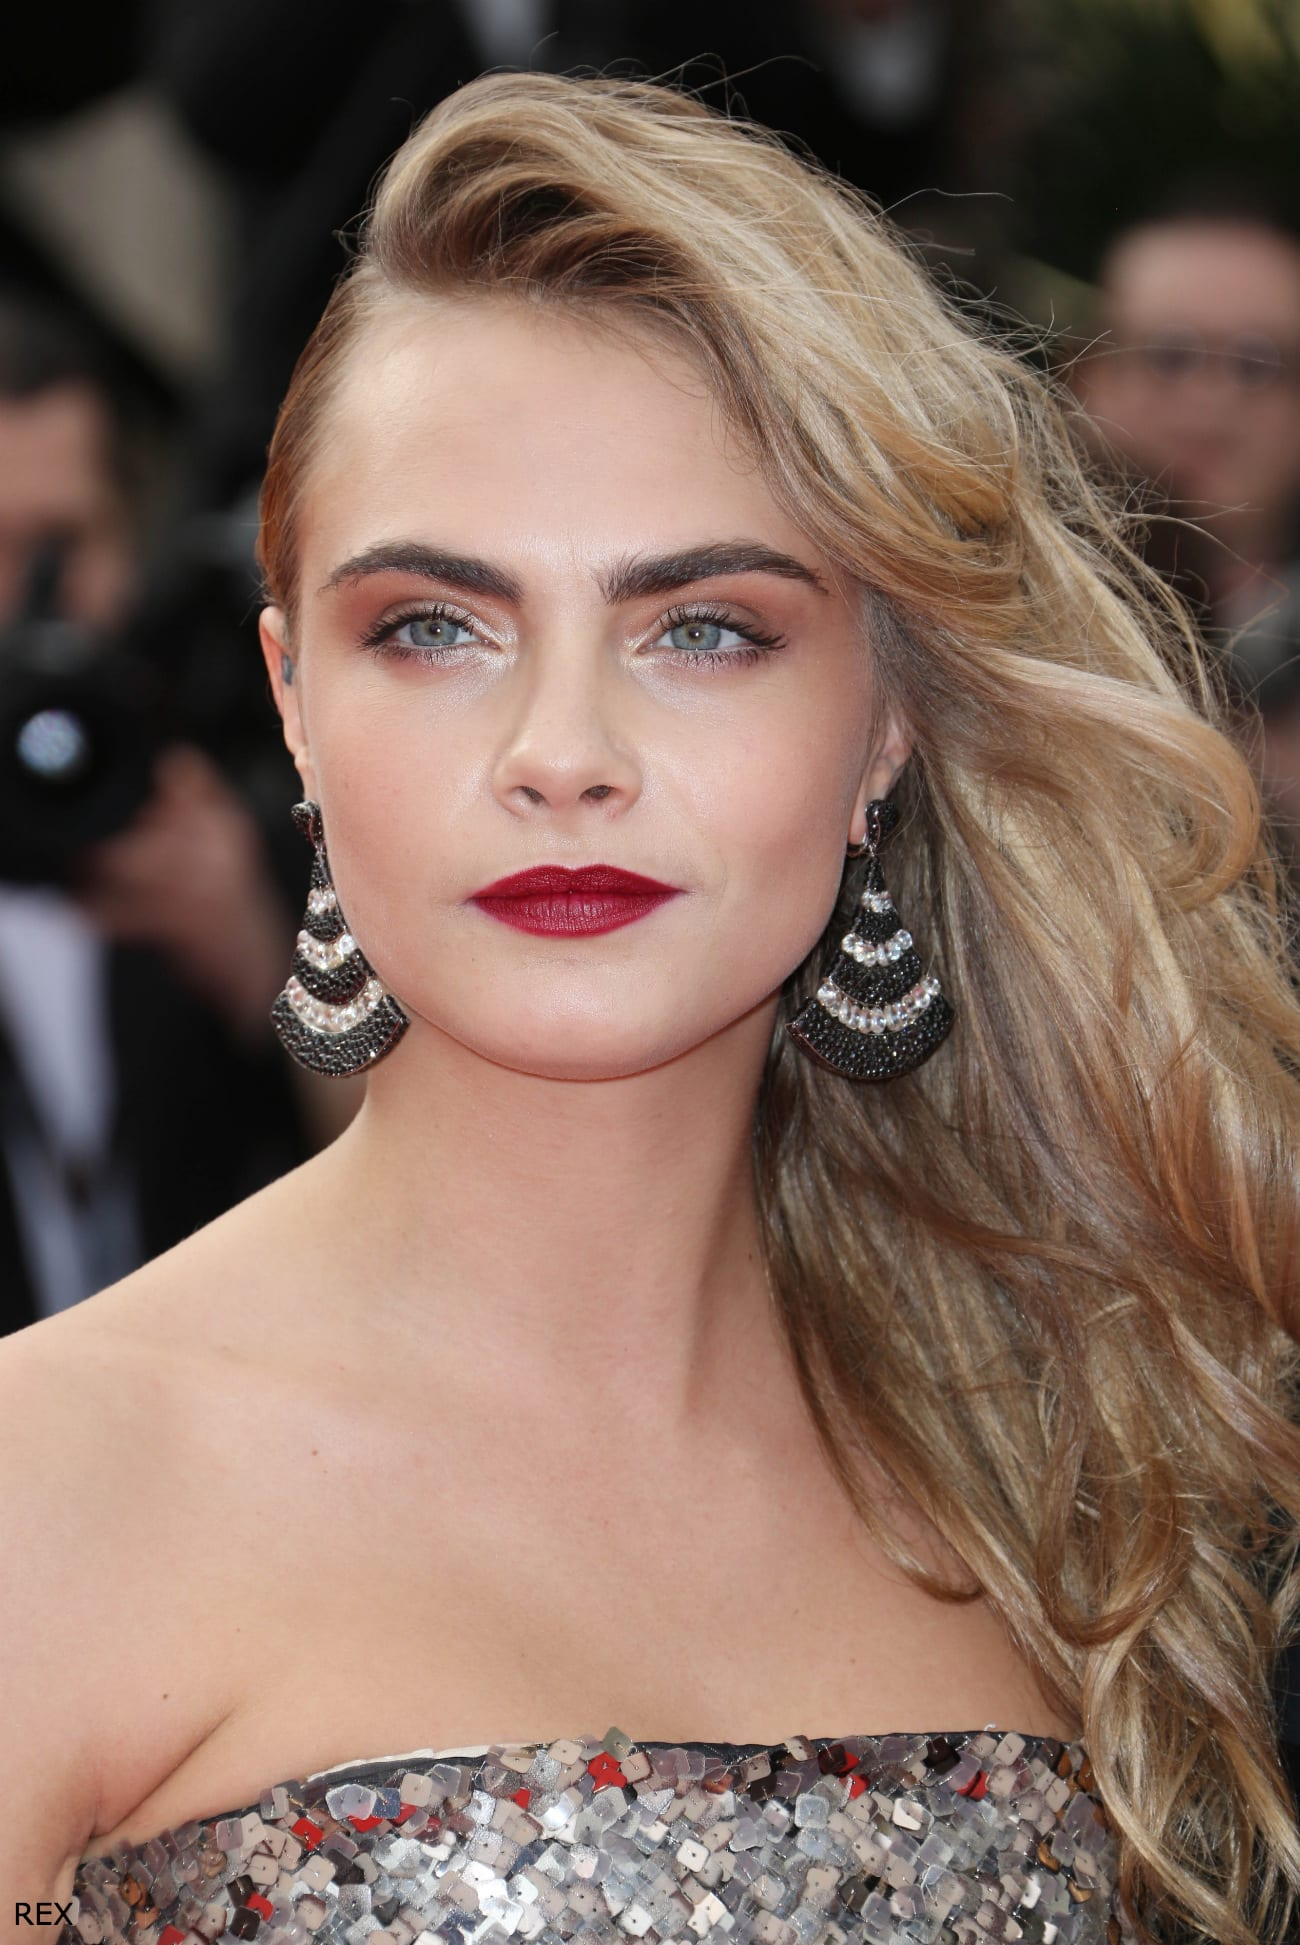 Cara-Delevingne-Cannes-2014-Side-Parting-Hair